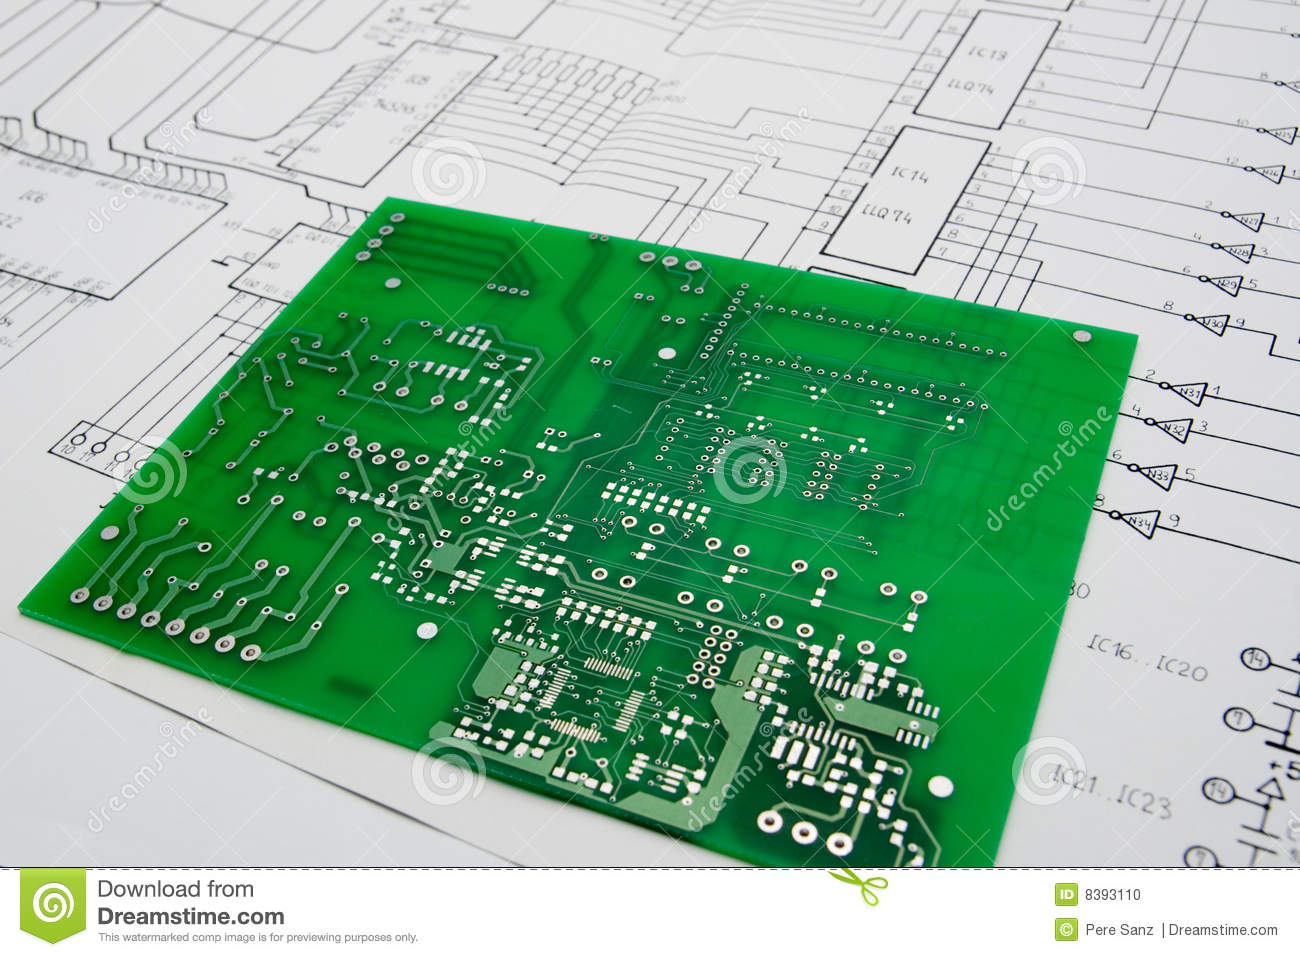 Working On An Electronic Project Stock Photo Image Of Abstract Printed Circuit Board Schematics Design Table With And